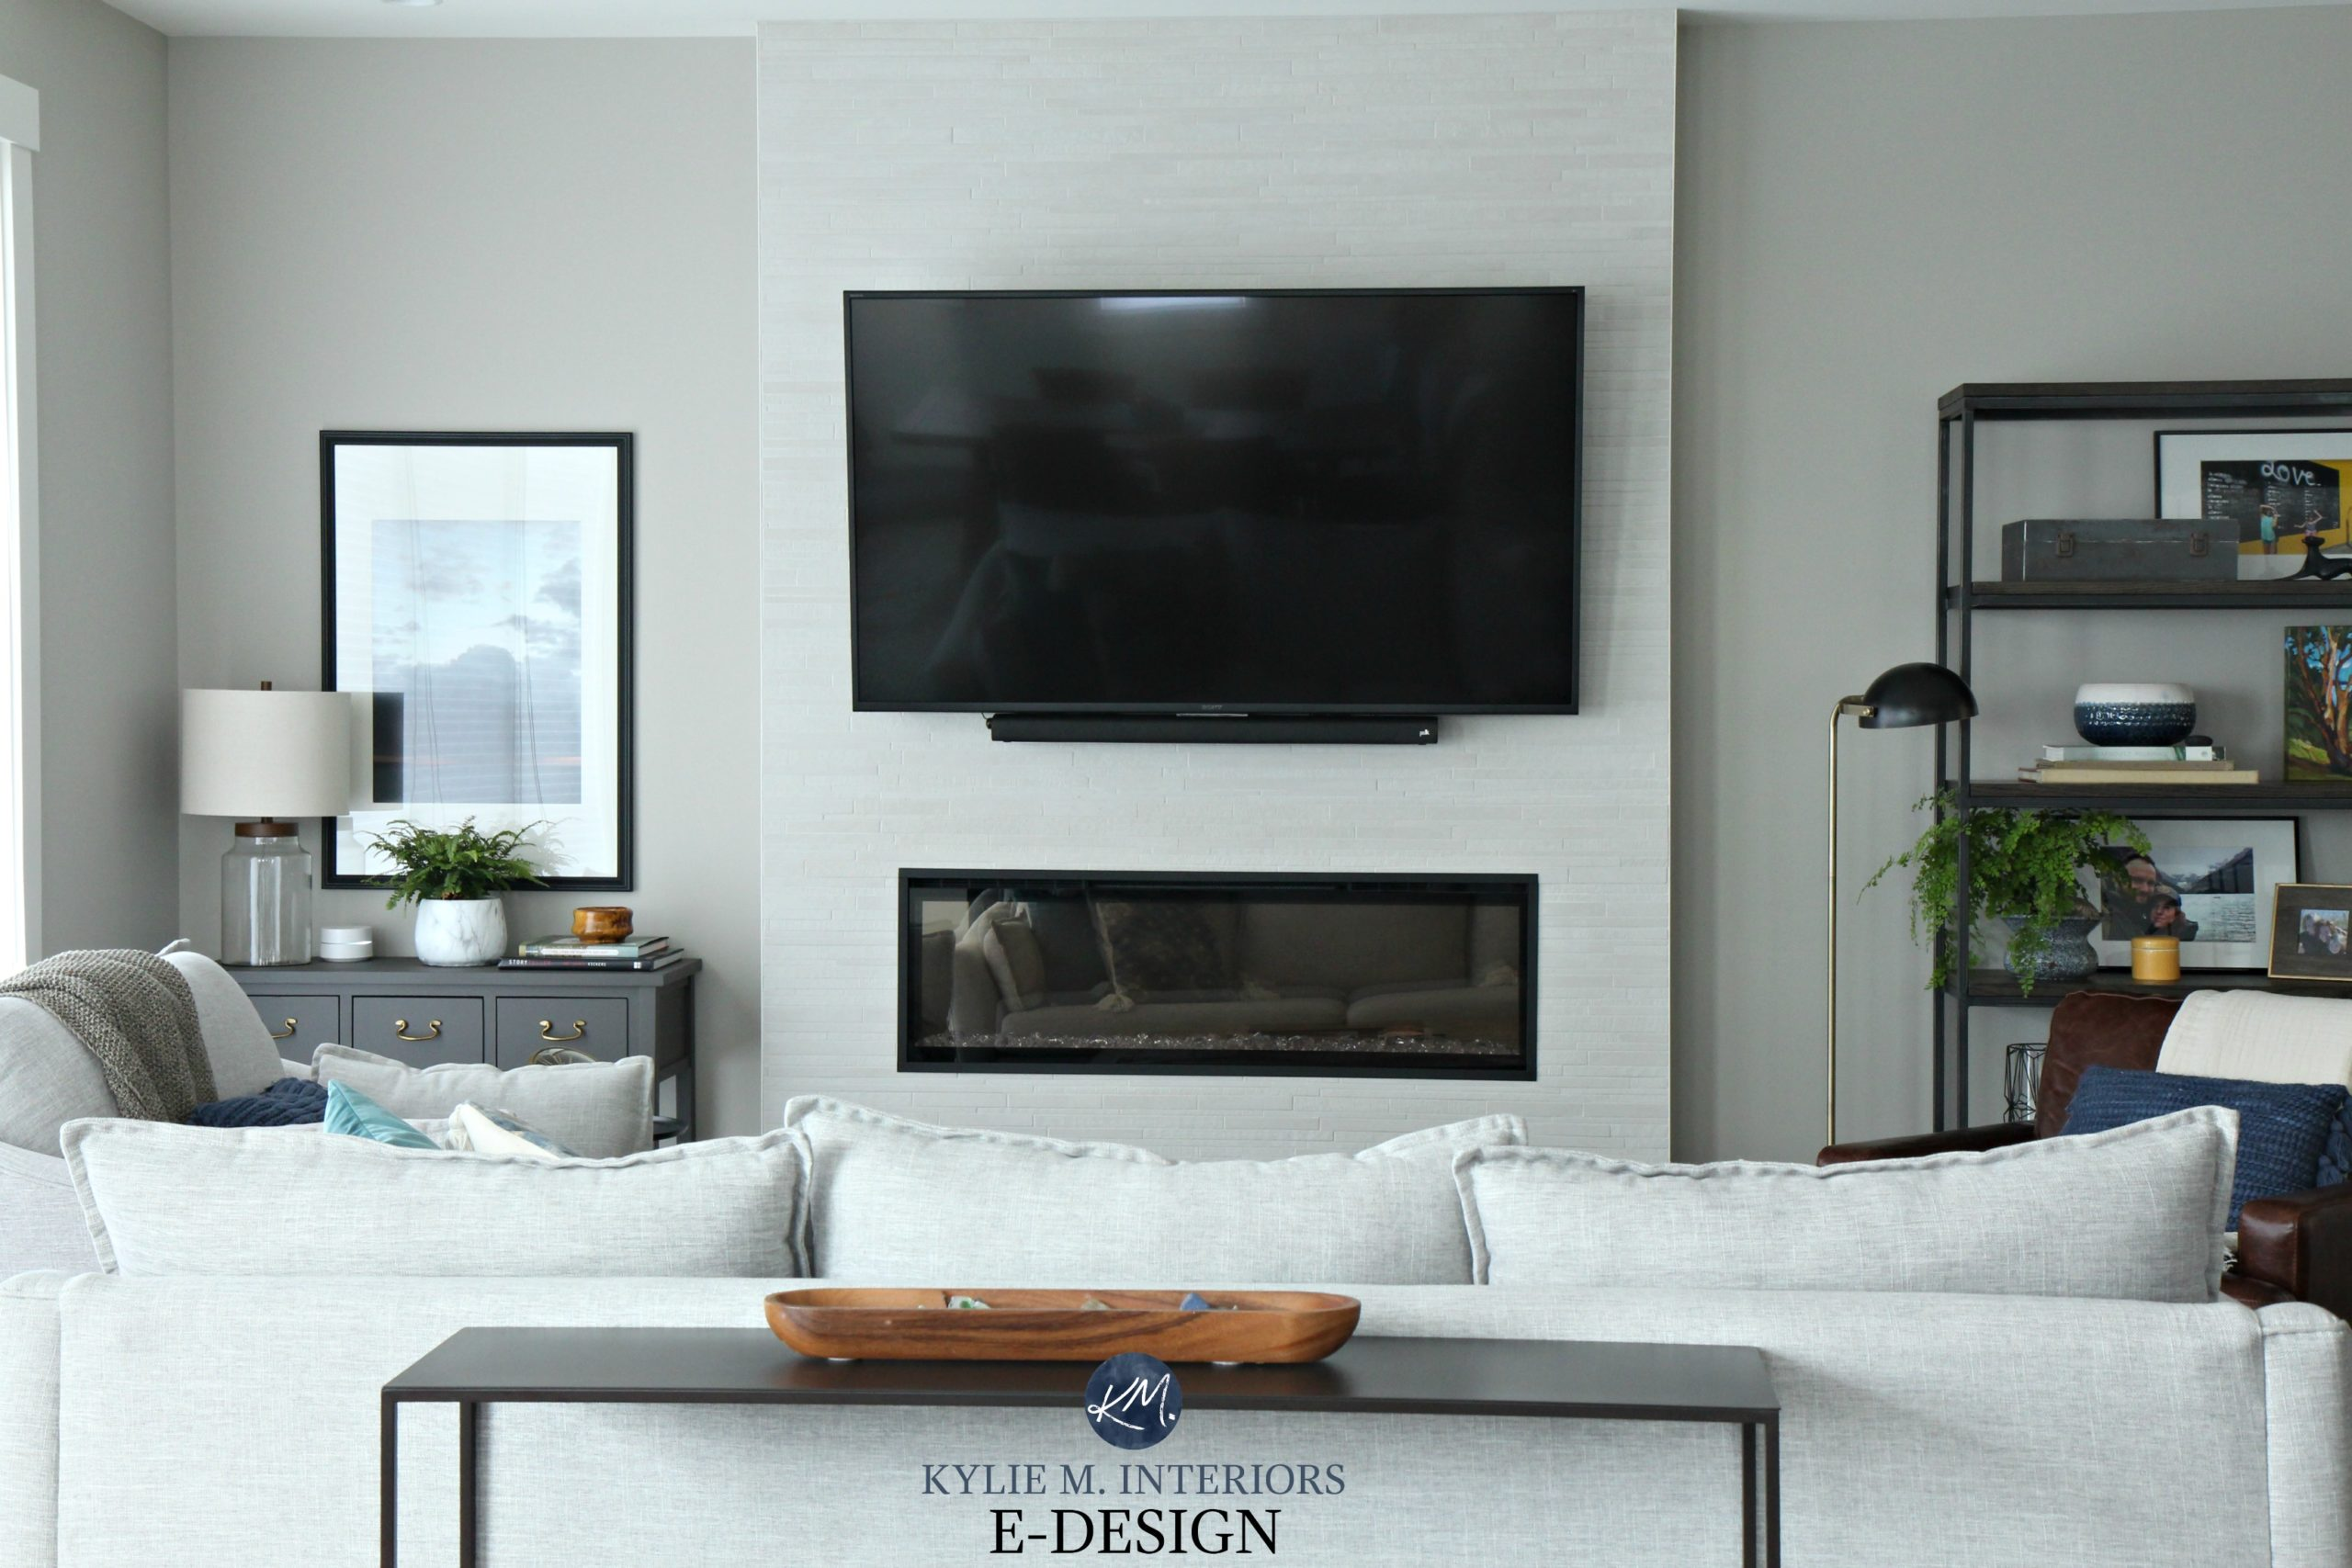 Sherwin Williams Collonade Gray In Living Room Kylie M